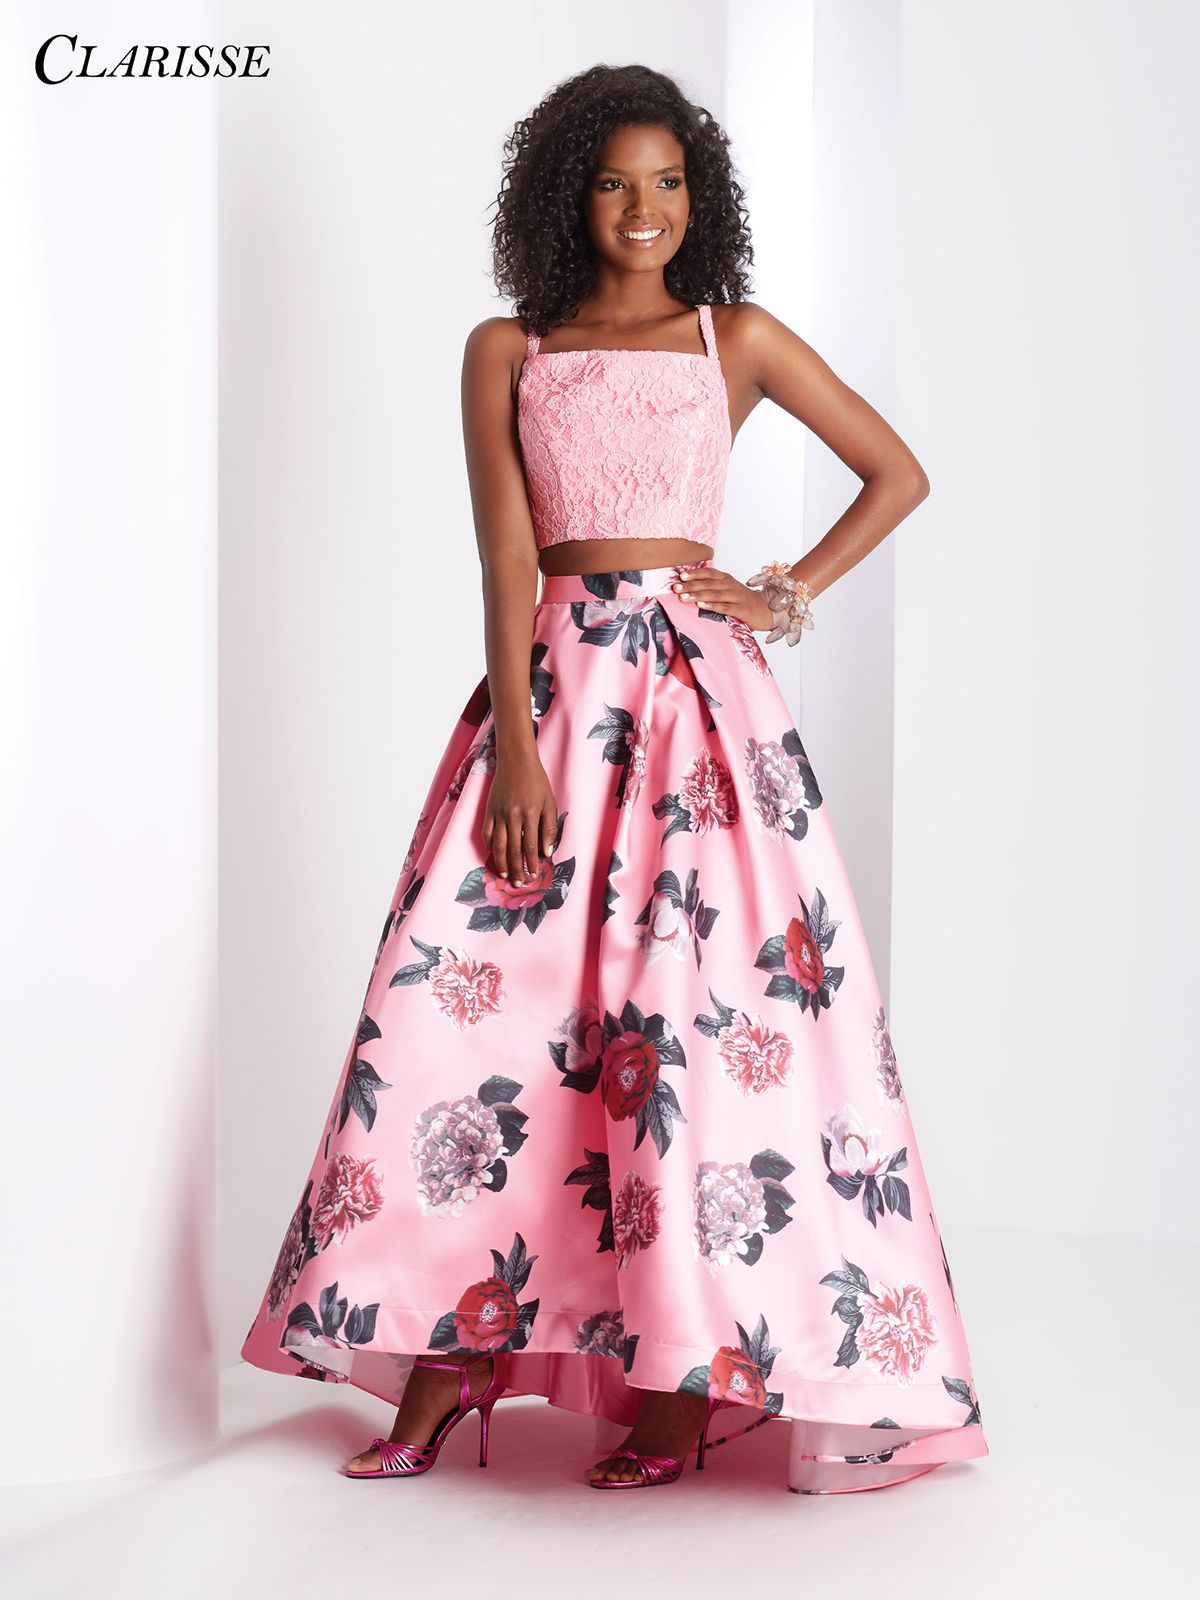 High Popular low dresses collection for prom advise dress in spring in 2019